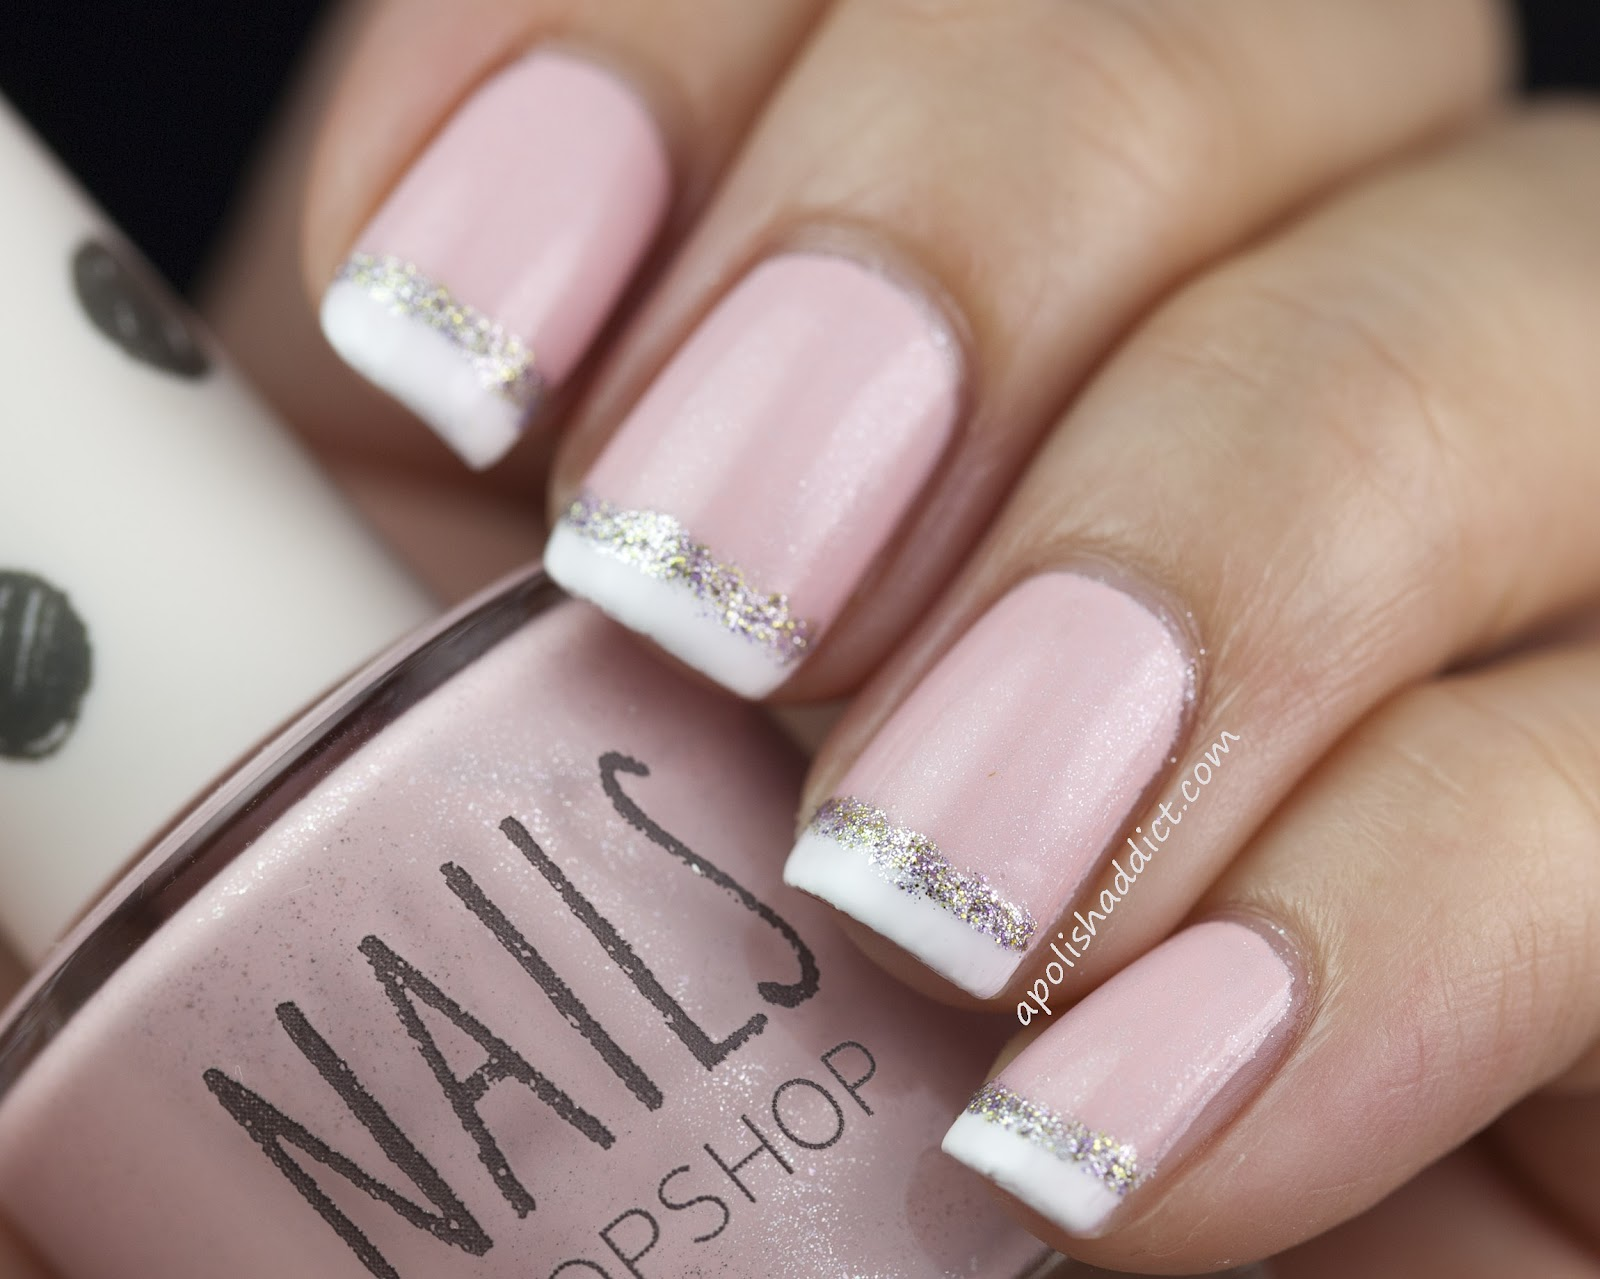 ... Topshop nail line. They are creamy pastel shades with silver shimmer